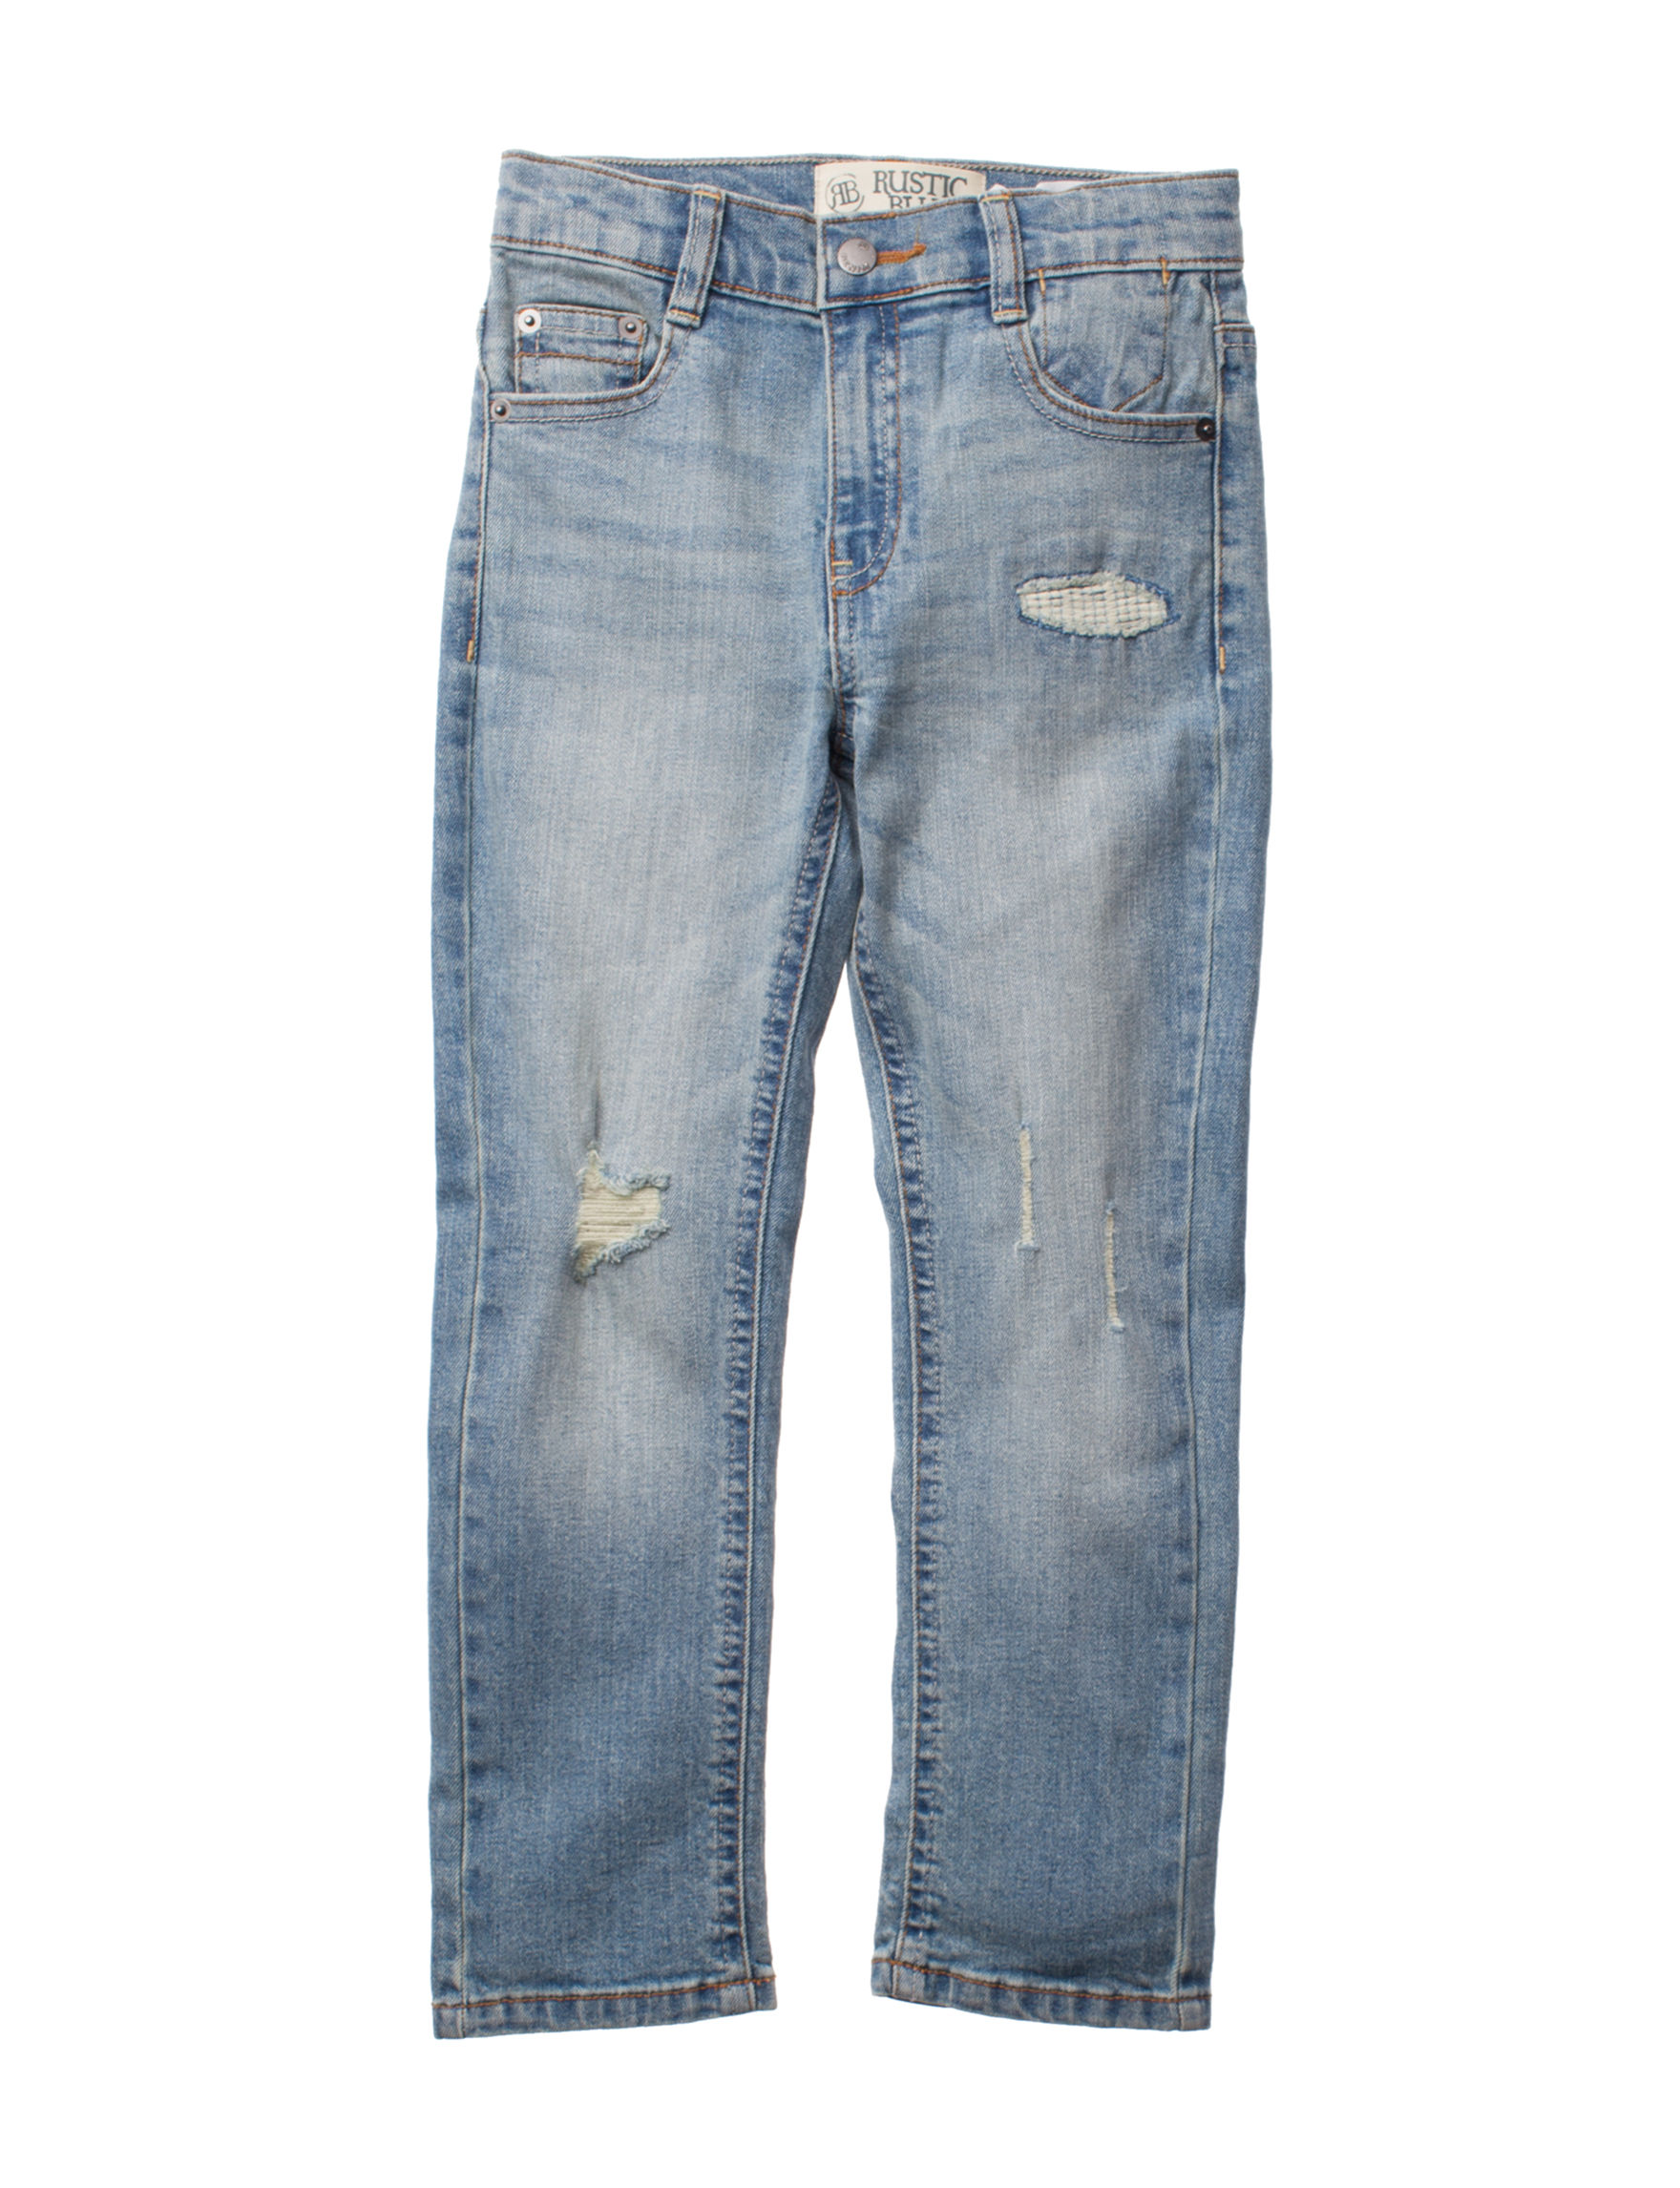 Rustic Blue Medium Wash Loose Relaxed Straight